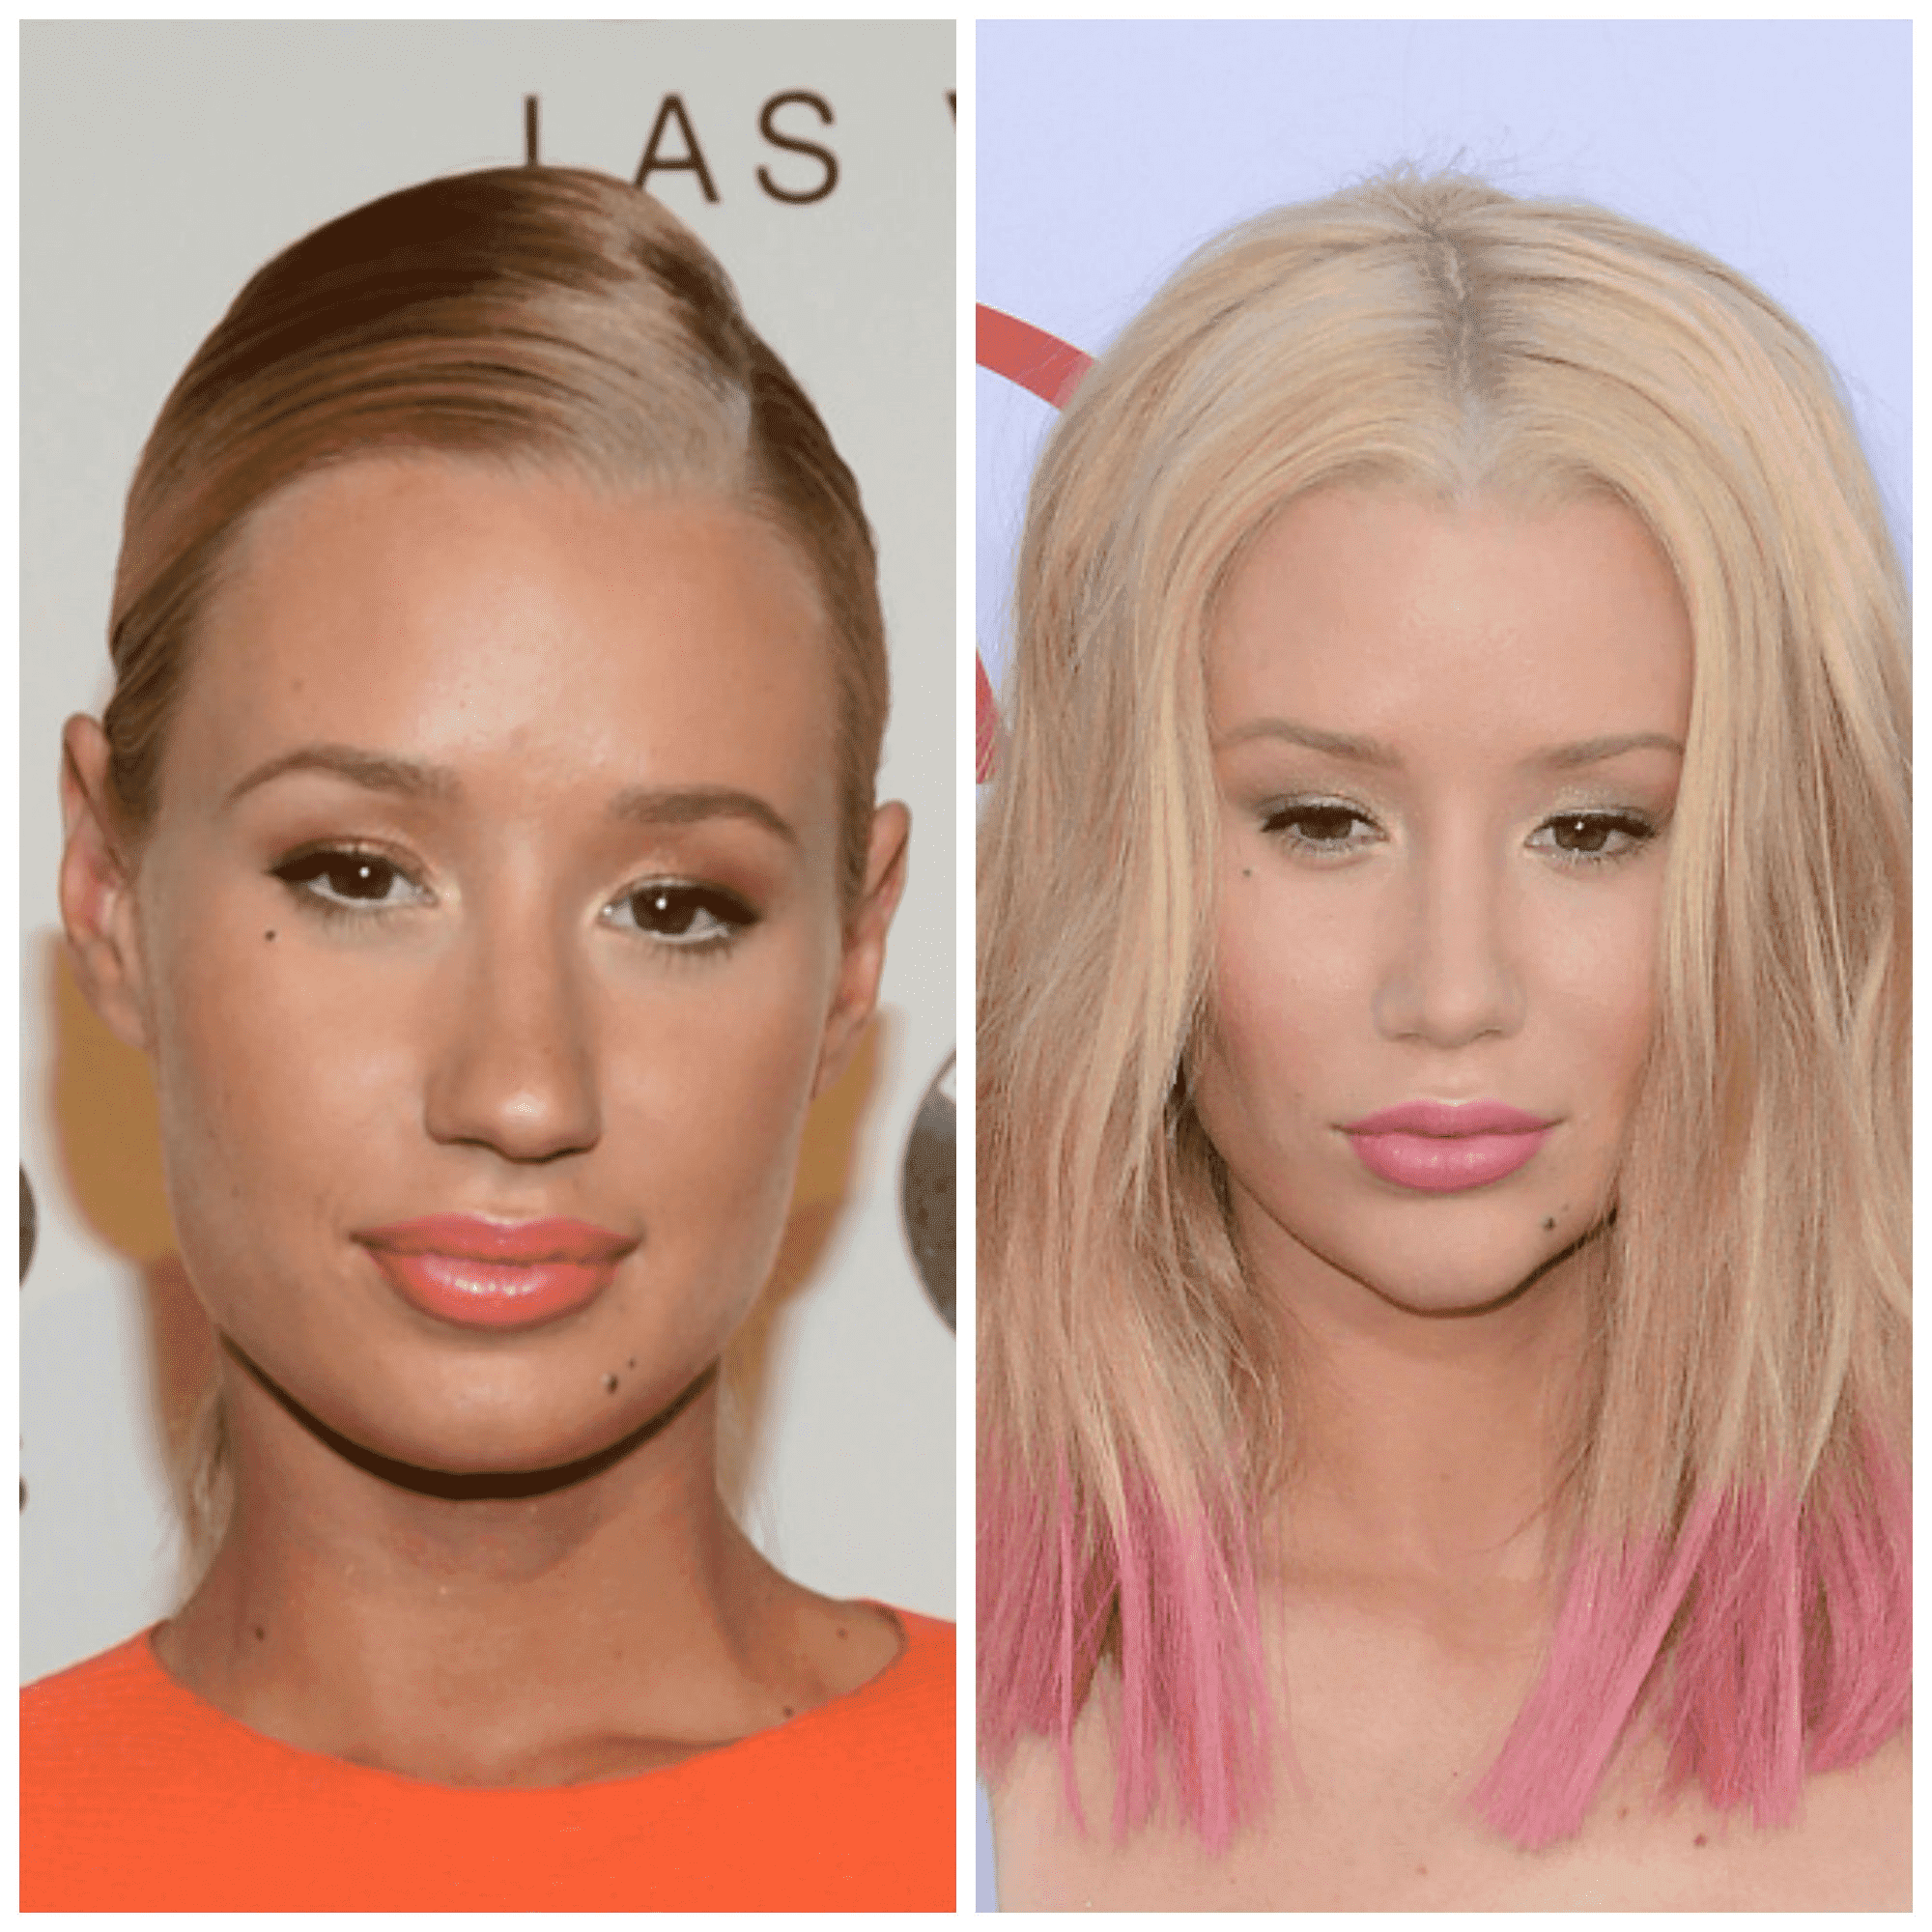 Iggy Azalea Plastic Surgery Face Before And After 1